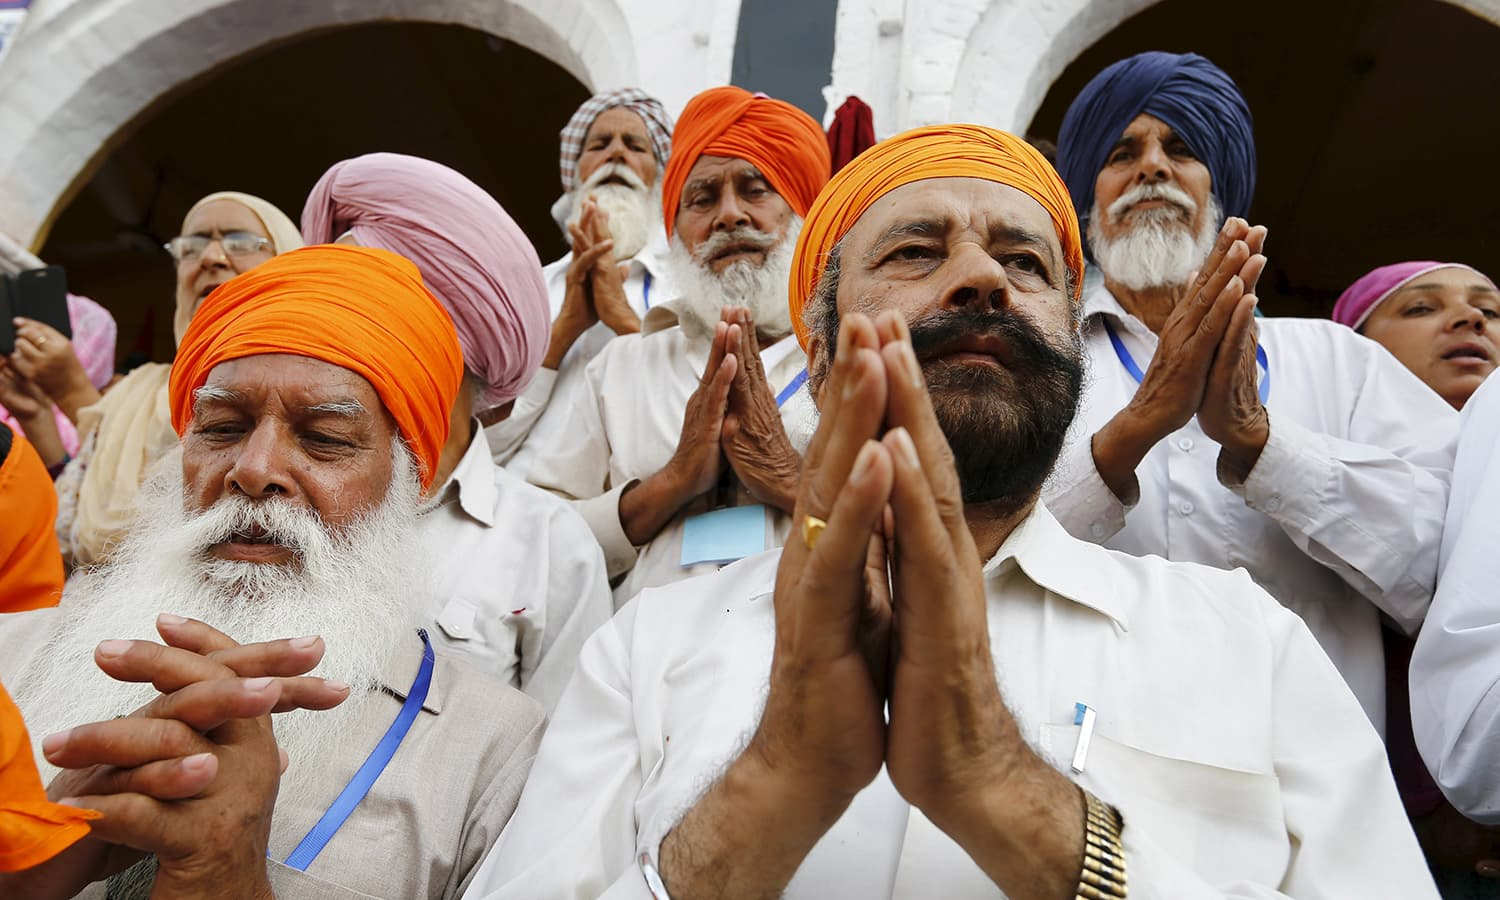 Devotees gesture in prayer as the procession passes by during the Baisakhi festival at Panja Sahib shrine in Hassan Abdal. — Reuters